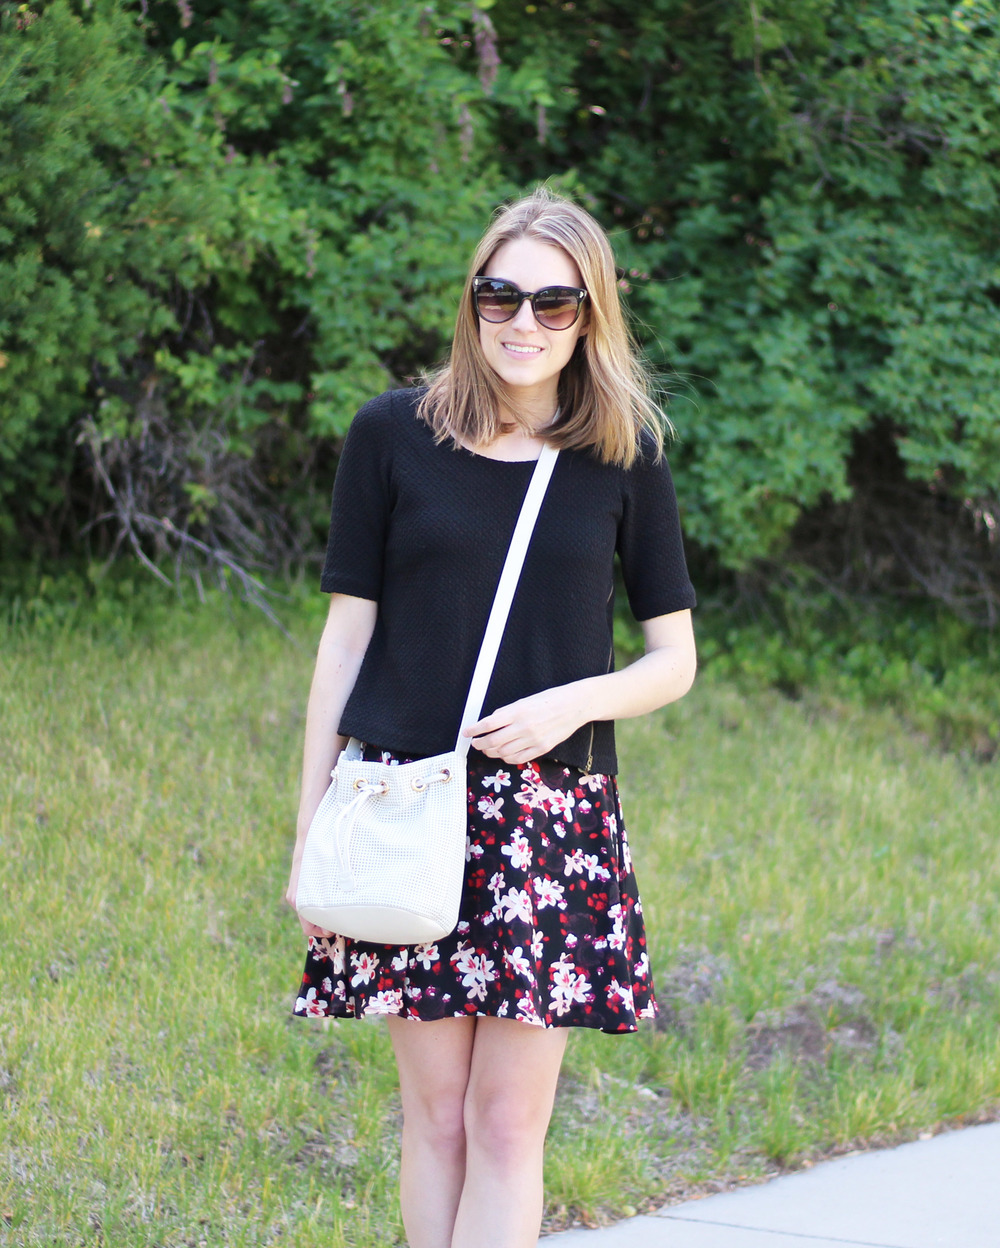 Black cropped top and dark floral skirt outfit with white bucket bag — Cotton Cashmere Cat Hair